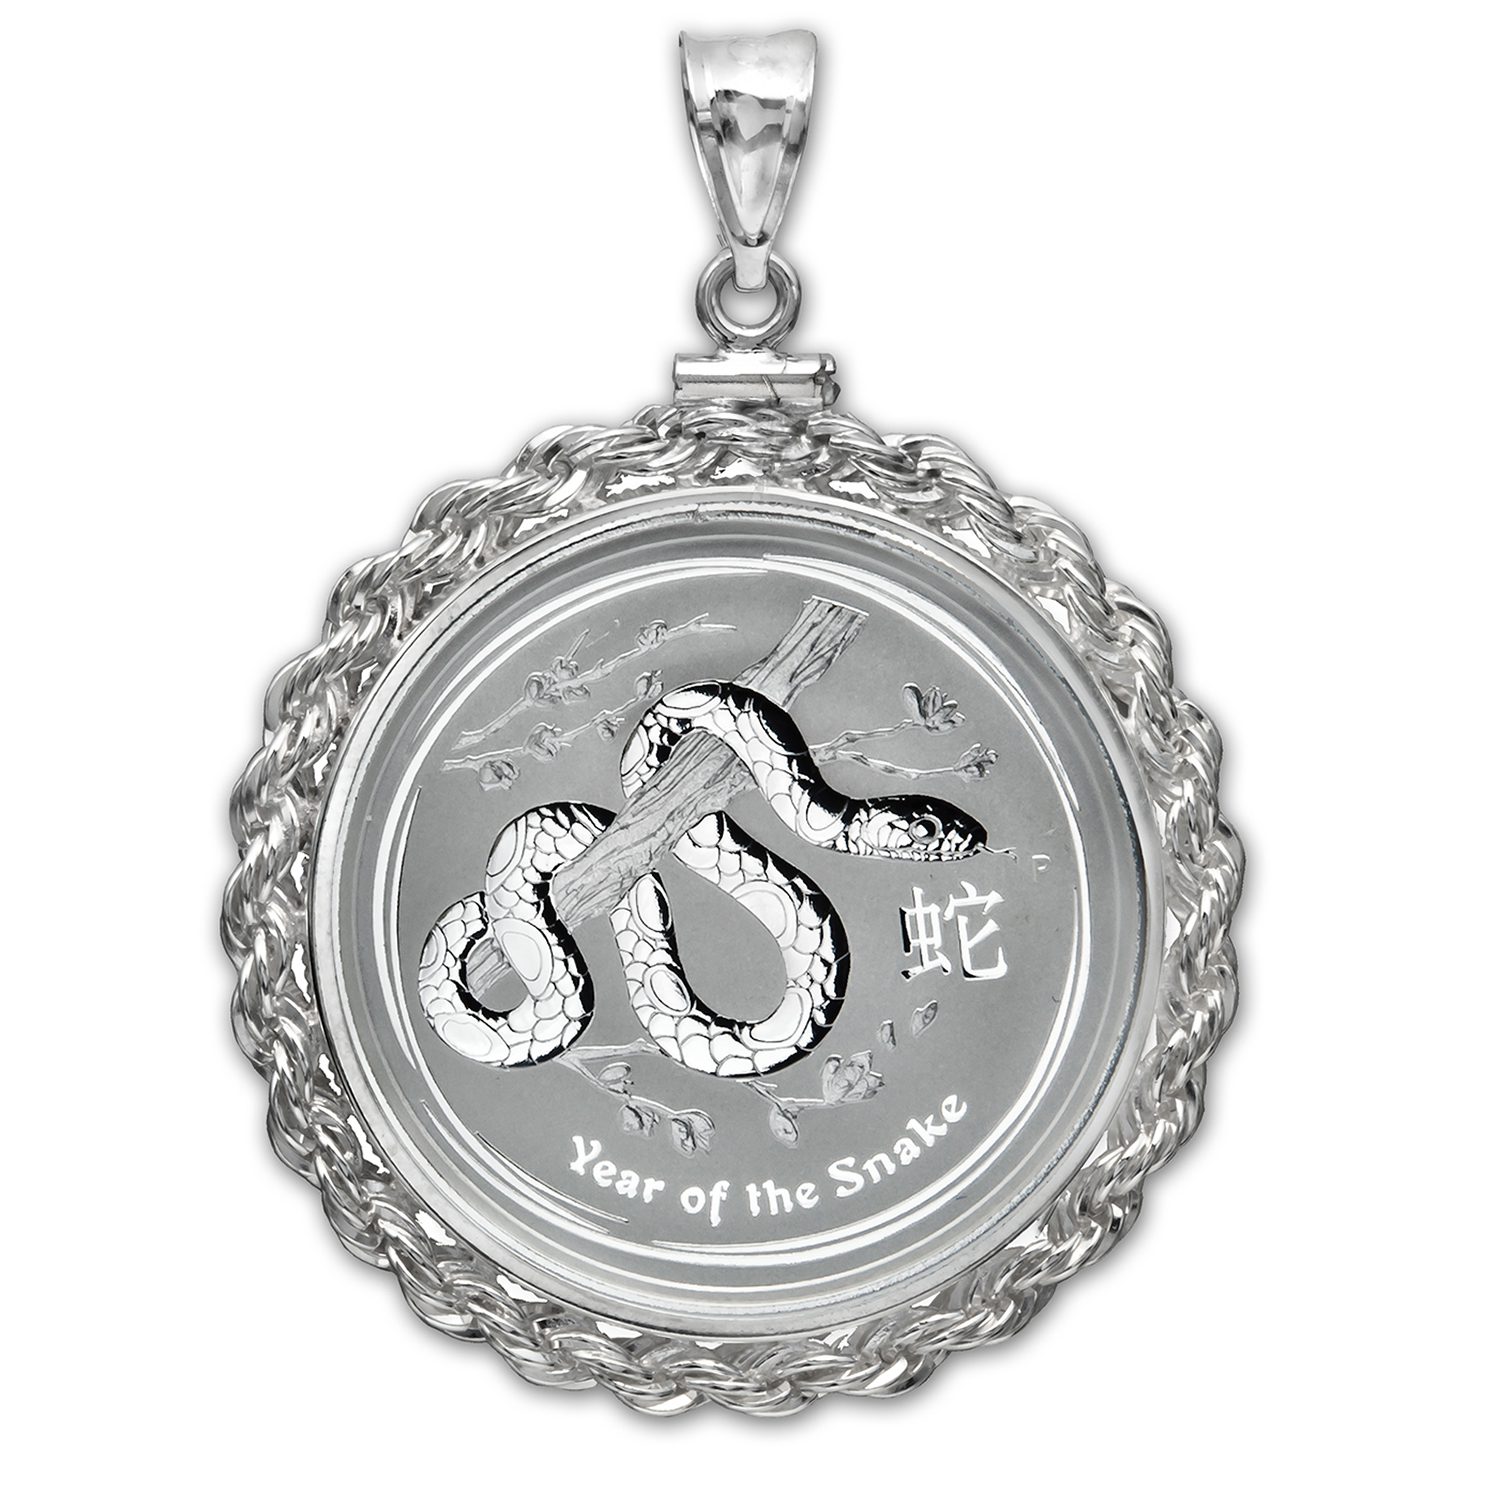 2013 1/2 oz Silver Snake Pendant (Screw-Top Rope Bezel)